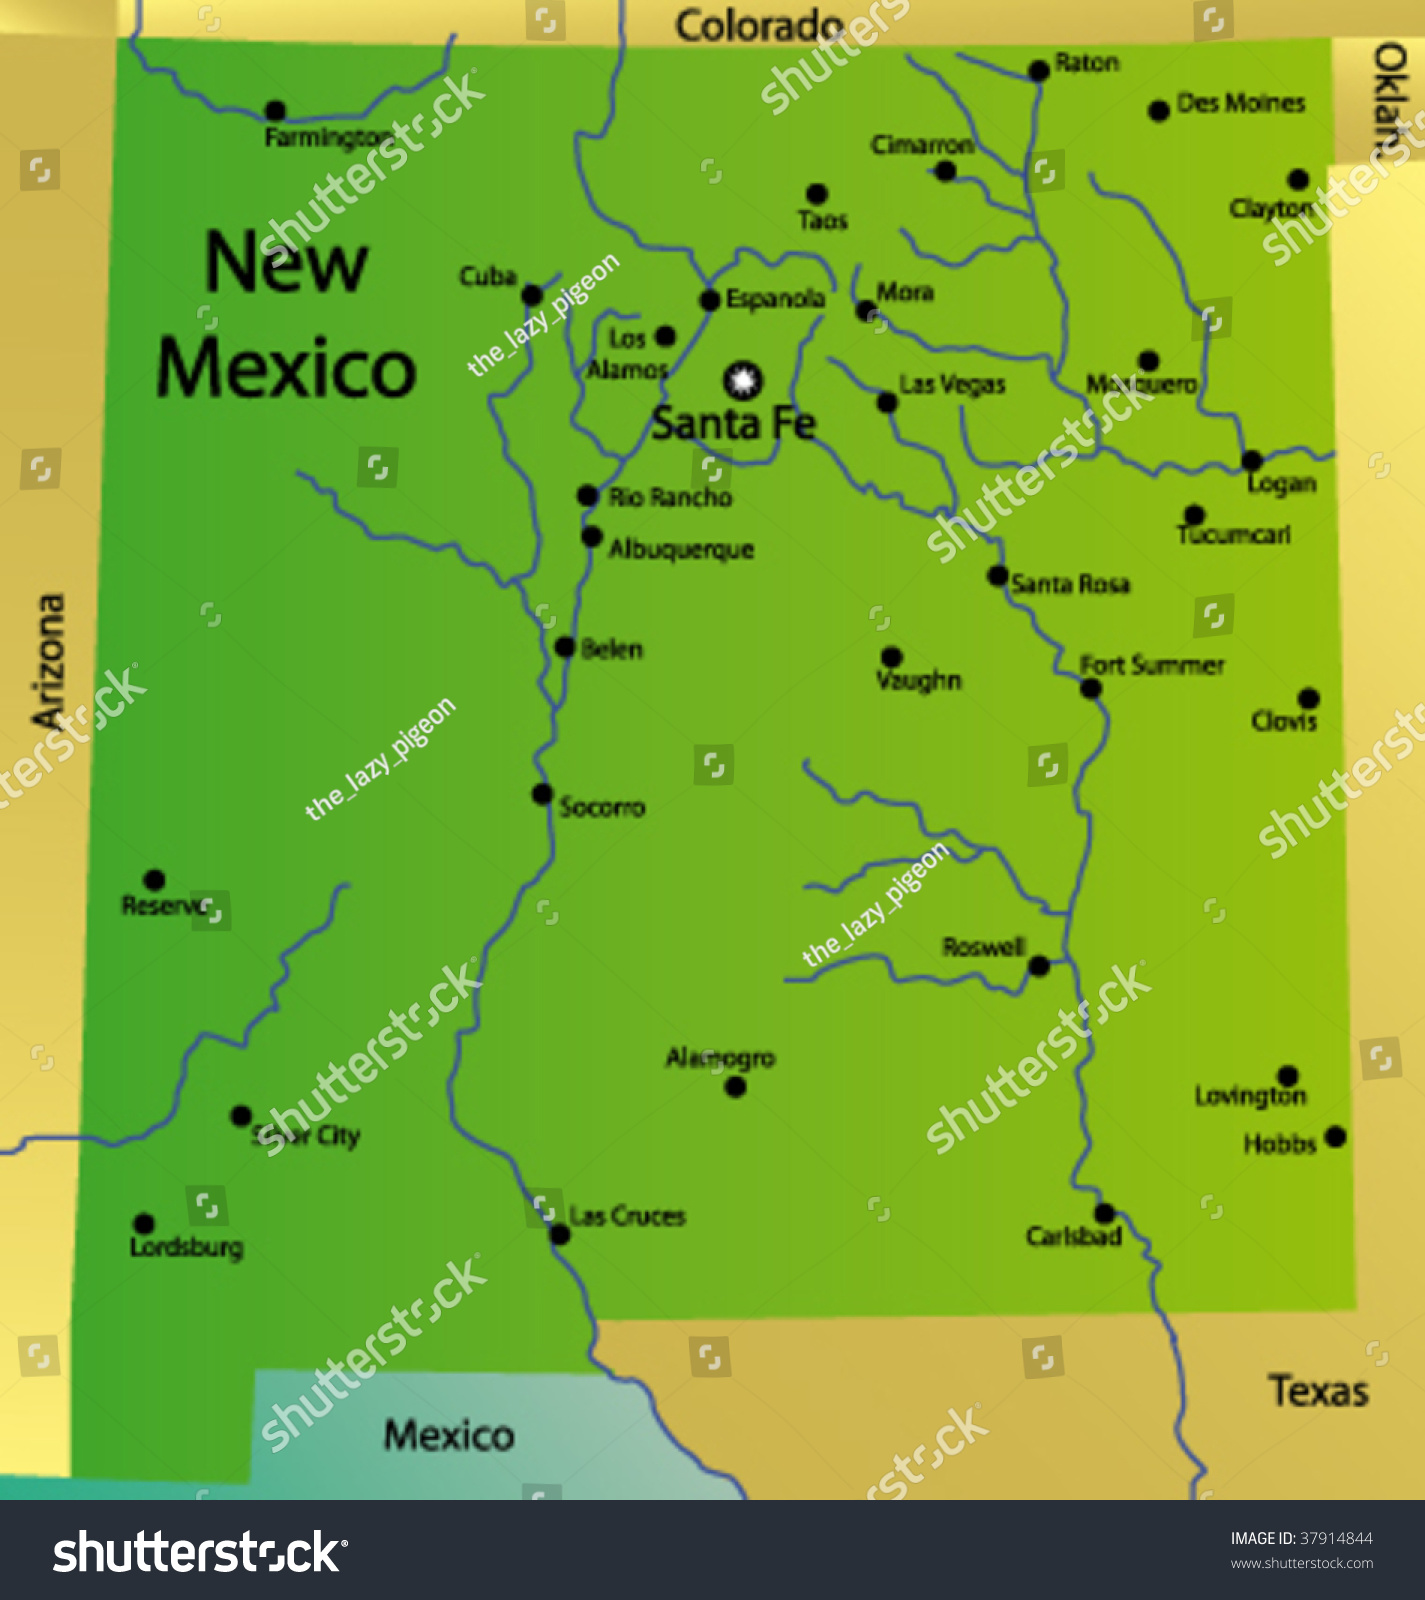 Detailed Vector Map Of New Mexico State  Usa  37914844